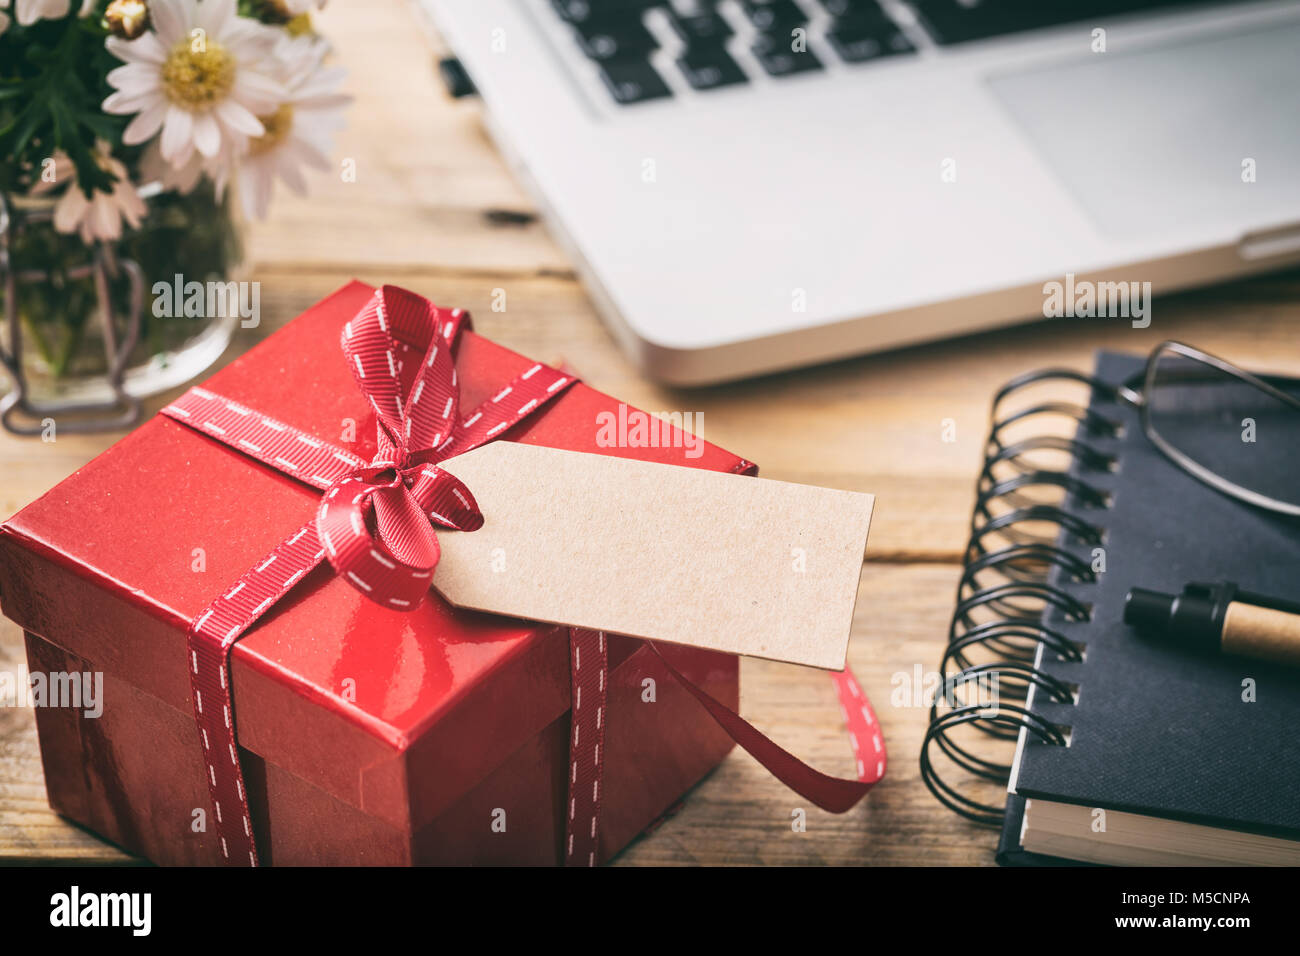 Ufficio Rosso E Bianco : Blank gift tag with red ribbon immagini blank gift tag with red